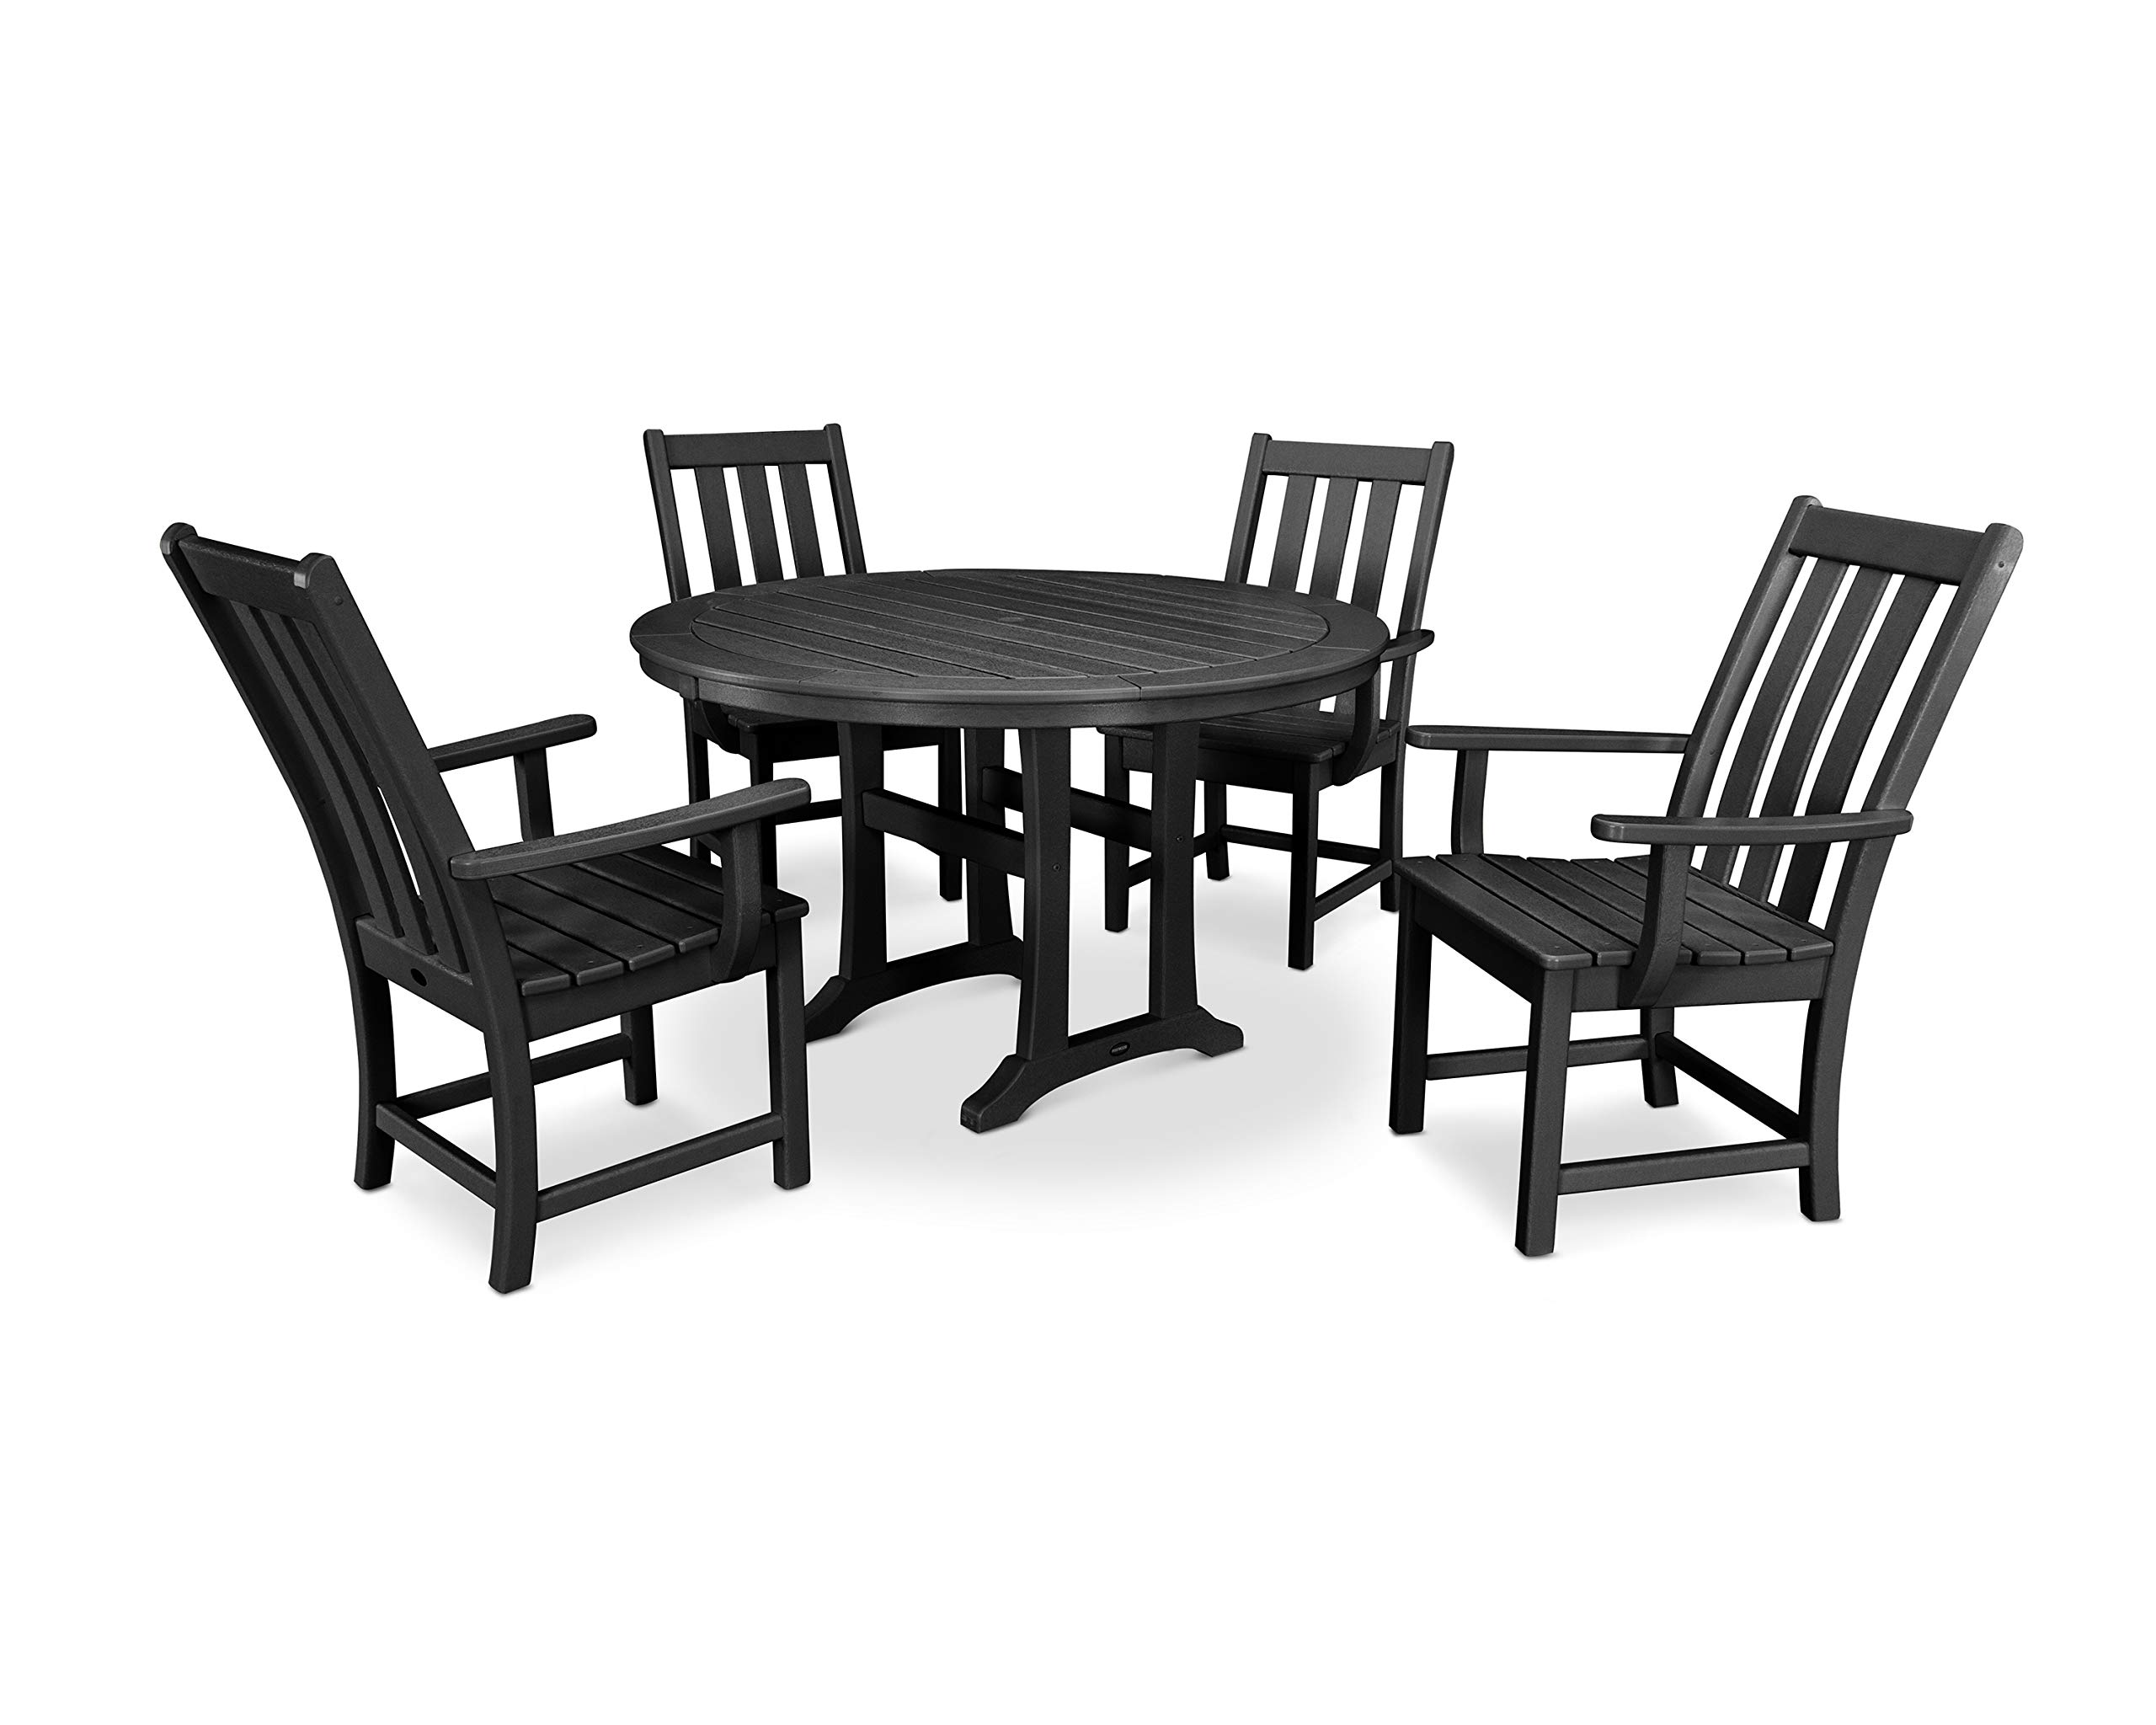 POLYWOOD Vineyard 5-Piece Nautical Trestle Dining Set (Black)